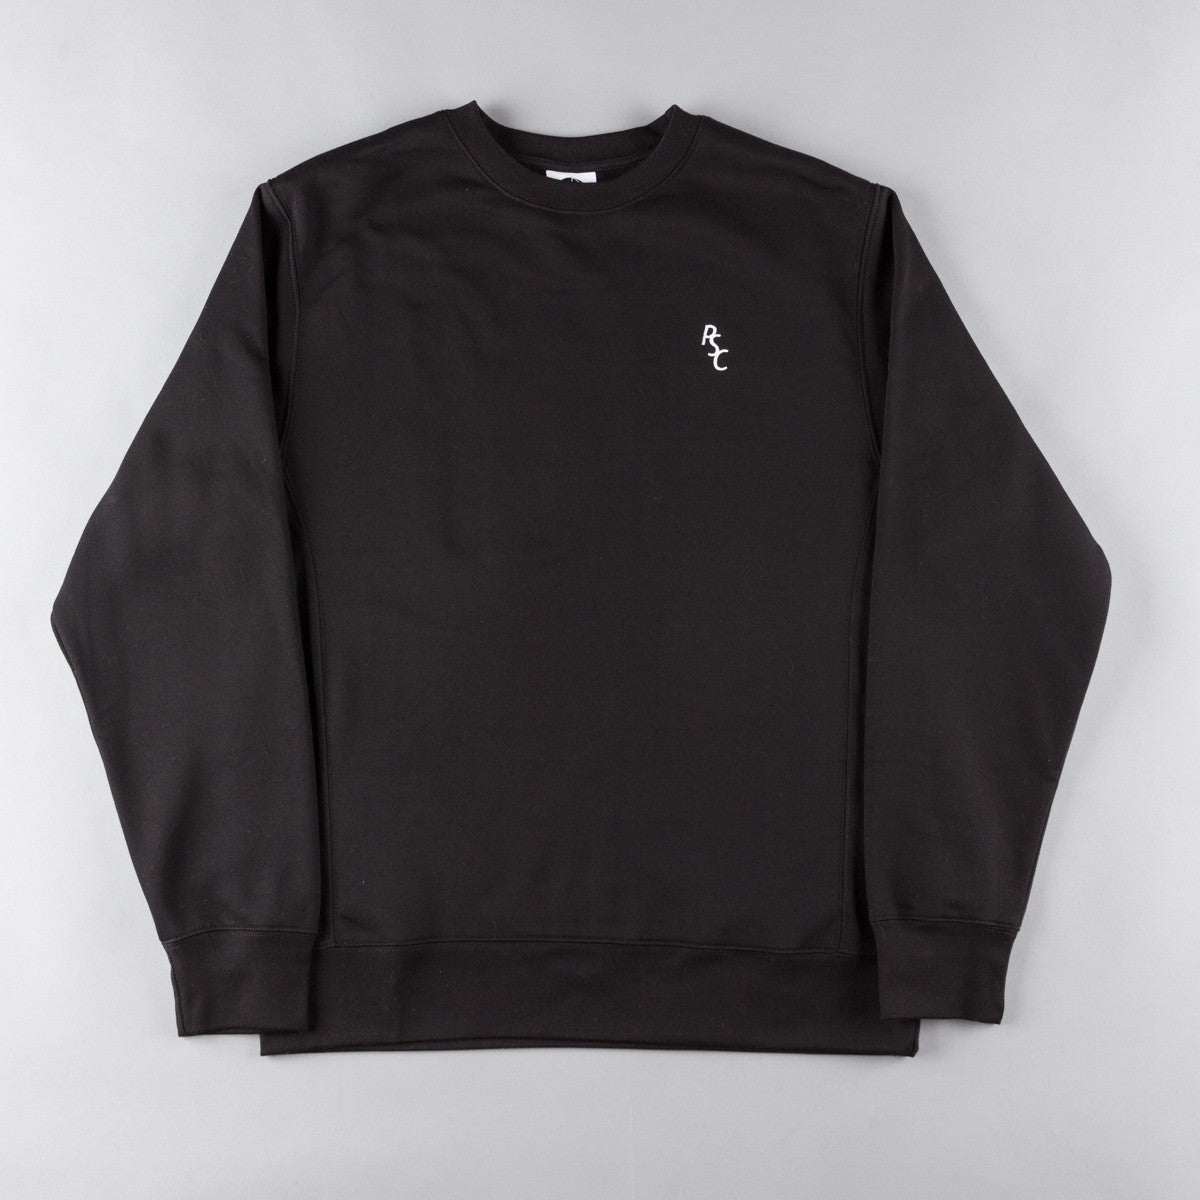 Polar PSC Sport Sweatshirt - Black